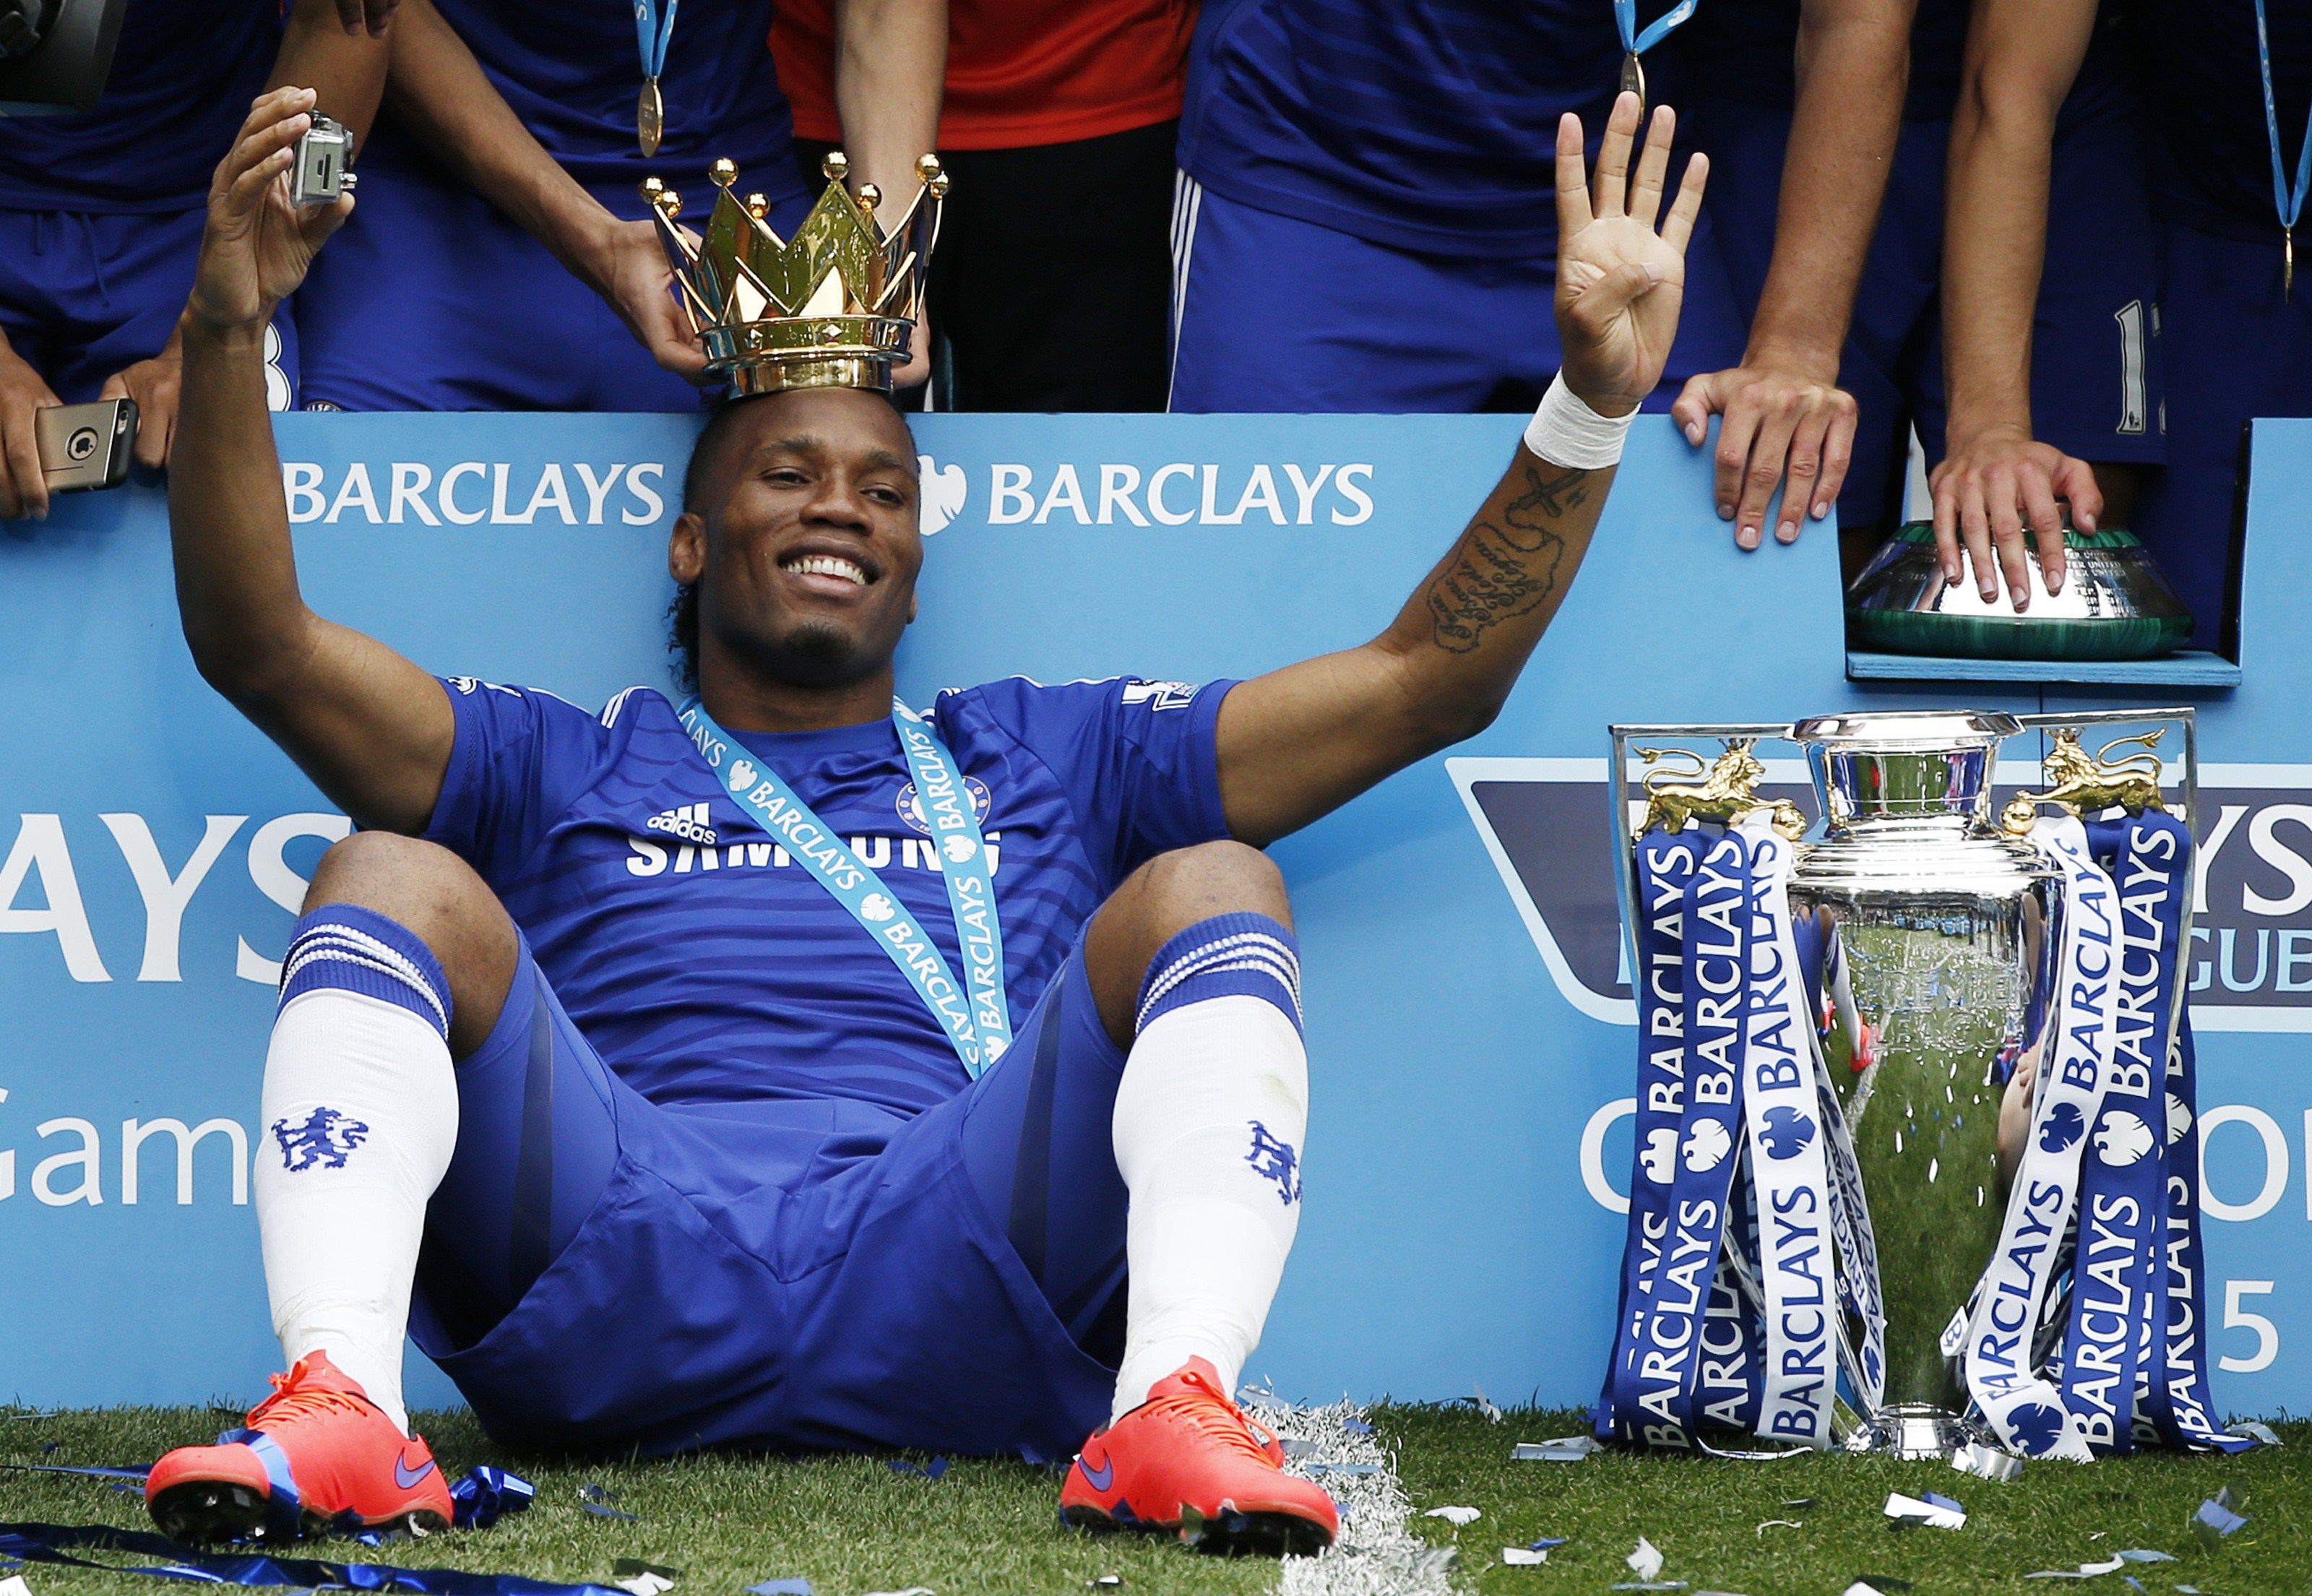 Didier Drogba, 40, retires after 20-year football career